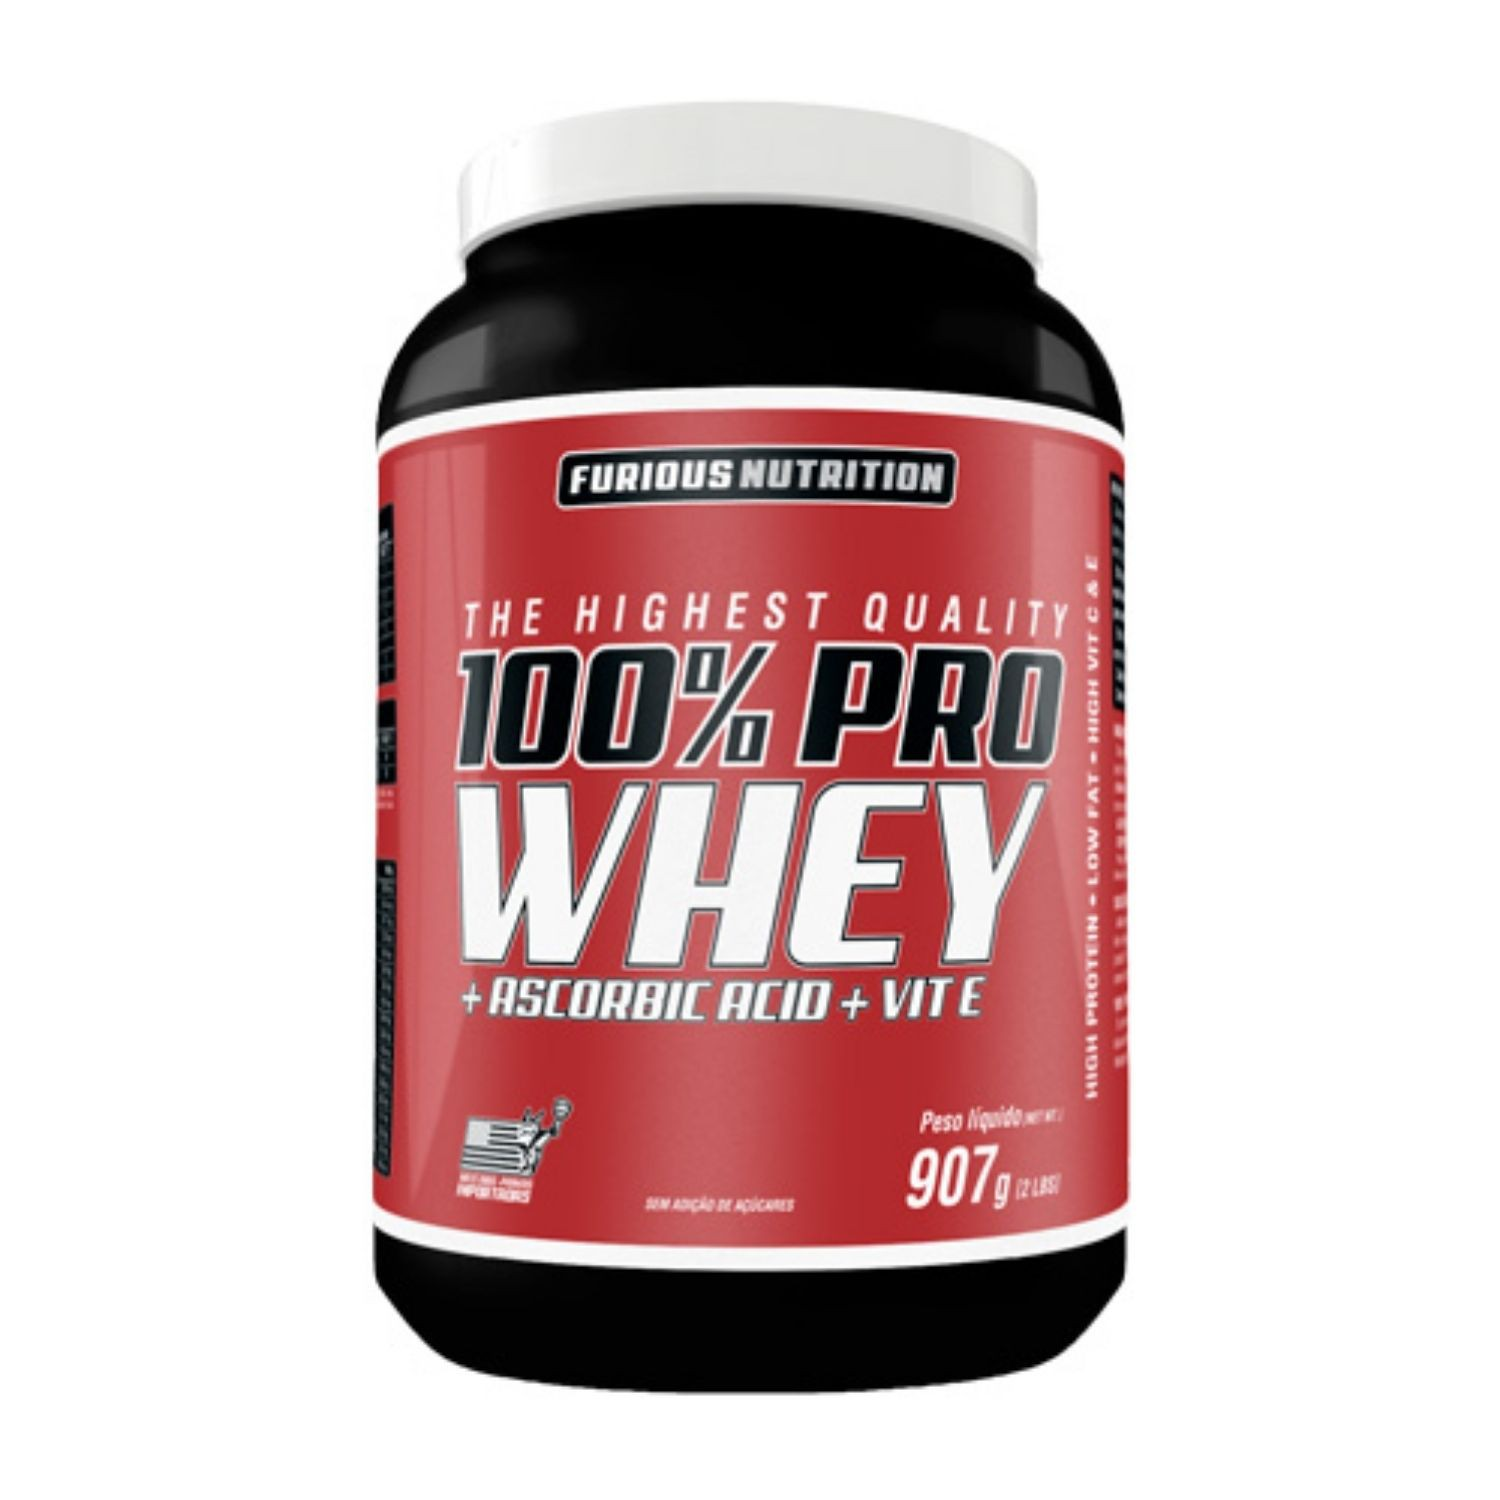 100% Pro Whey 907g Furious Nutrition